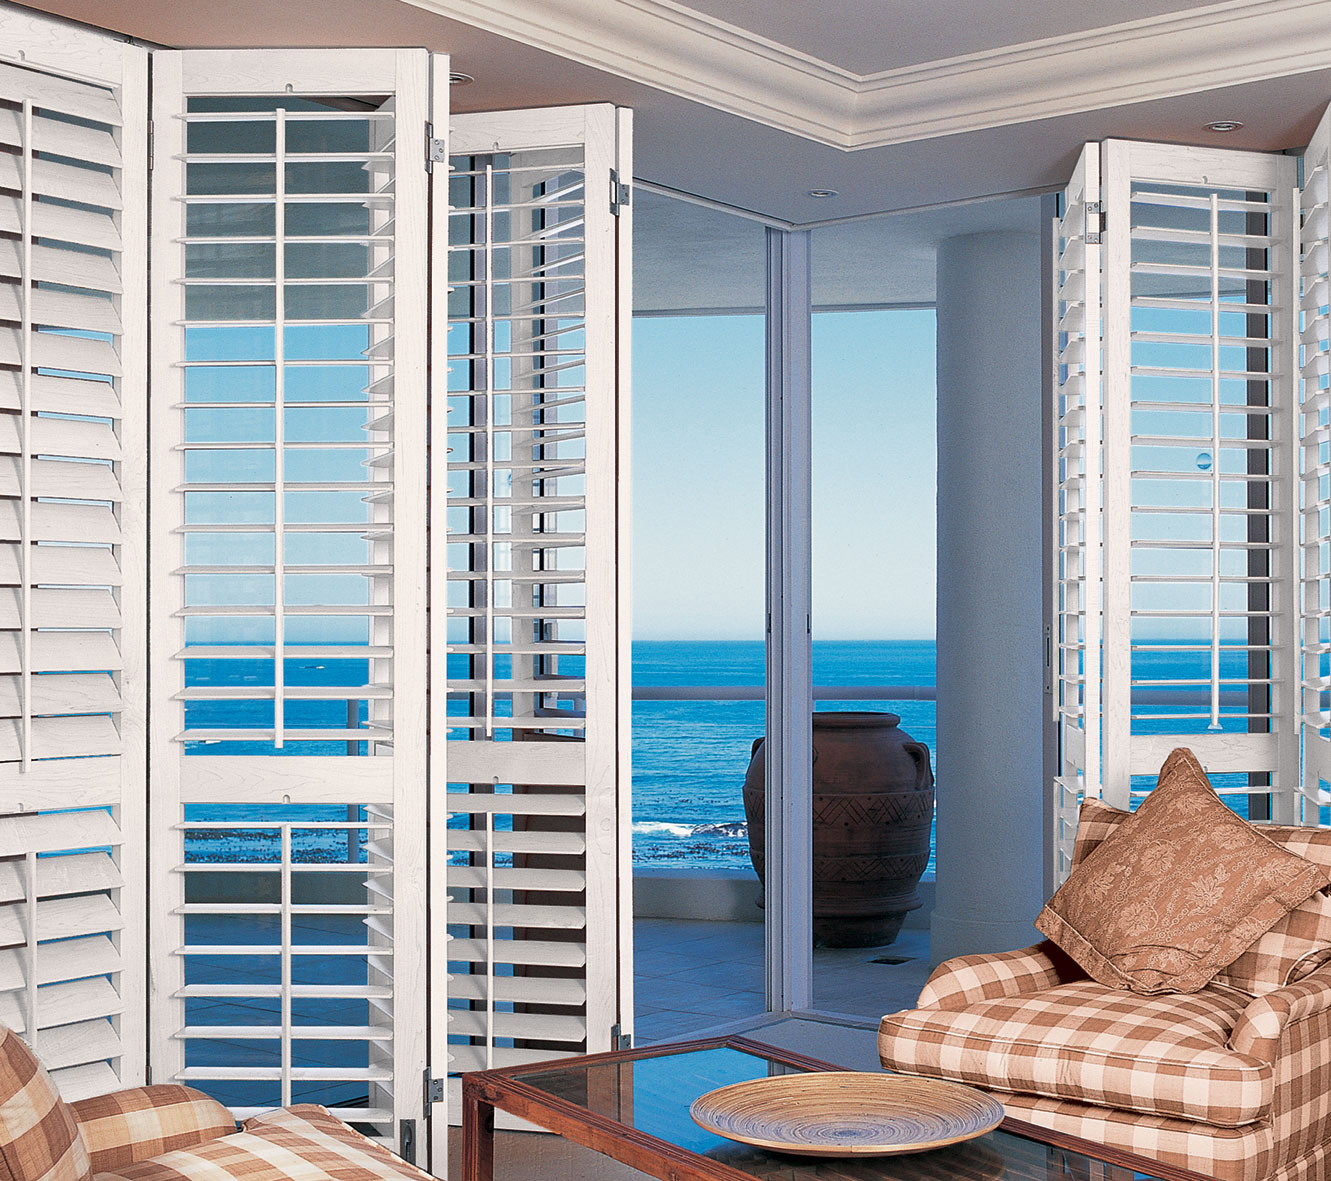 about friendly the blinds count inc affordable in ga us and professionals cartersville shutters knowledgeable at on